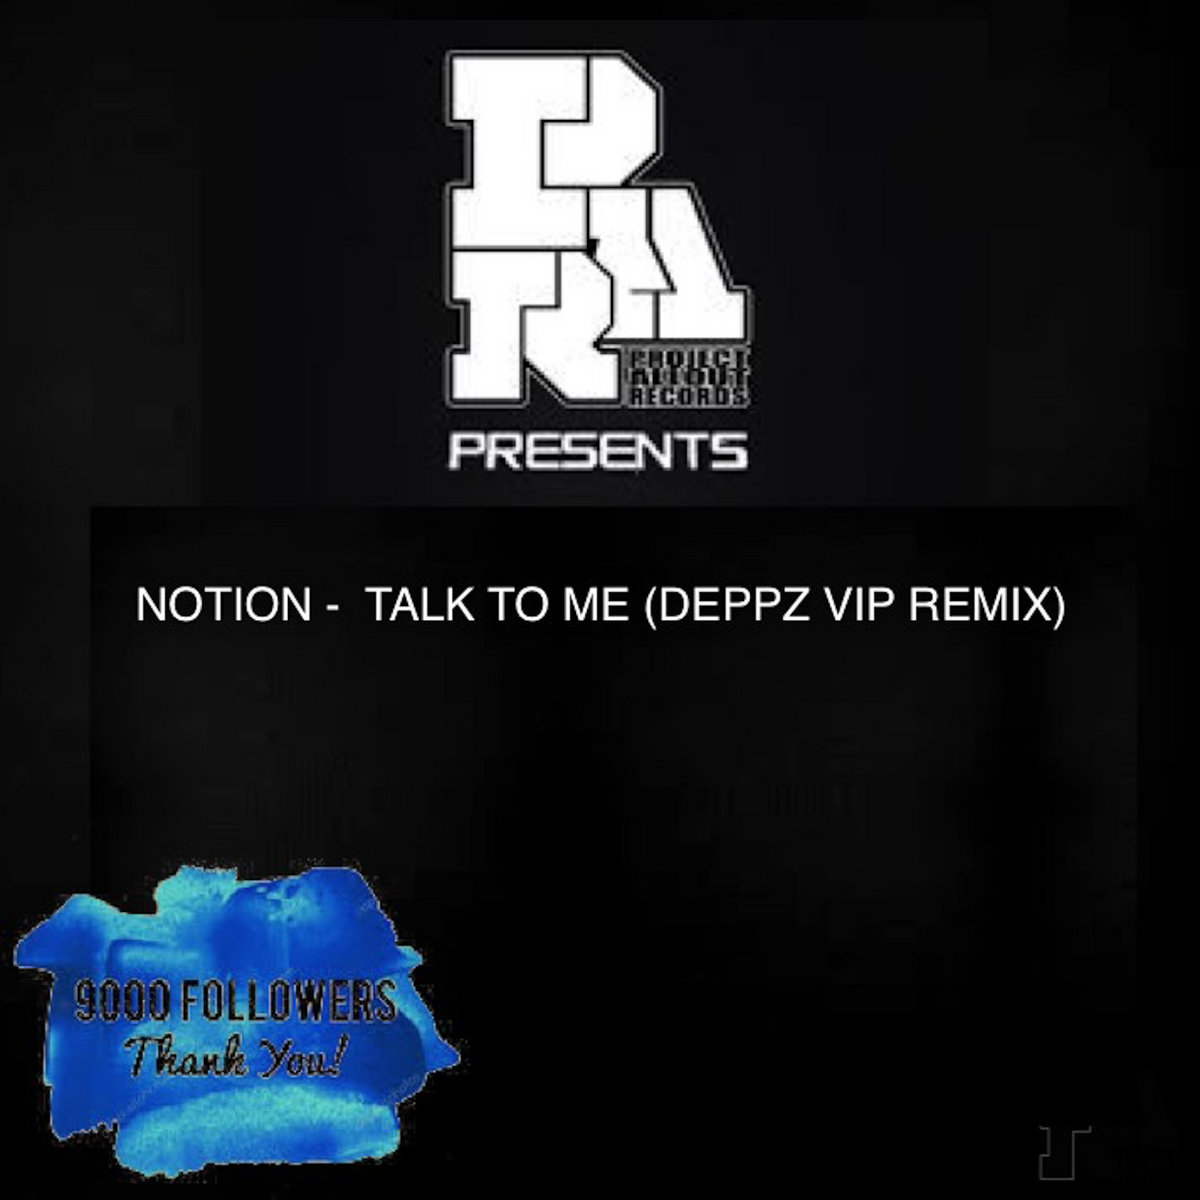 Project Allout Record Present Notion Talk To Me (DEPPZ VIP